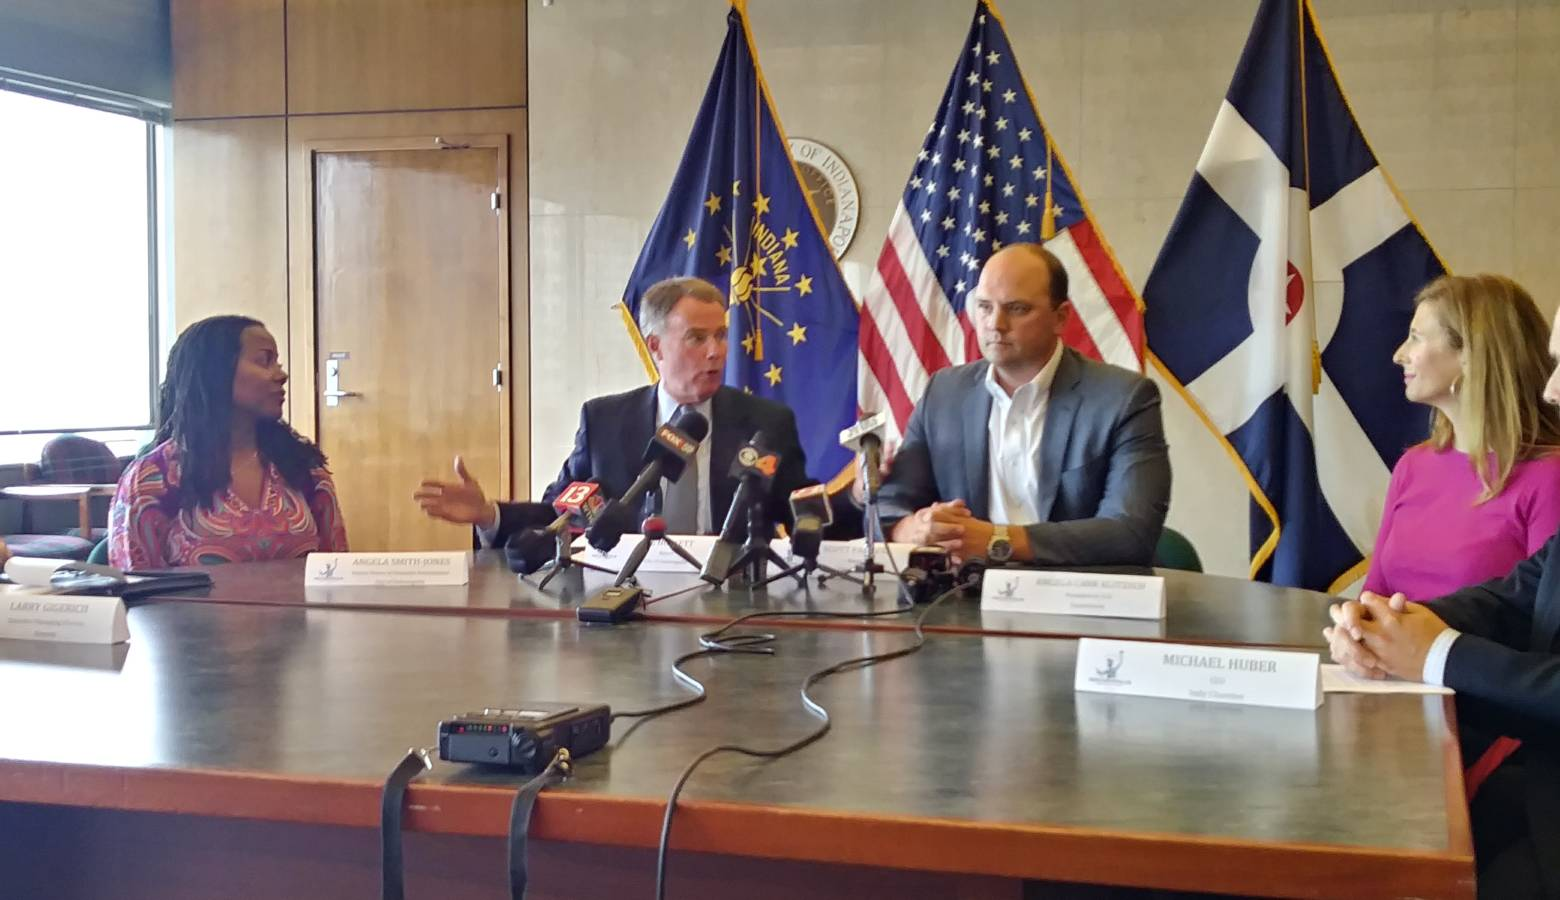 Indianapolis Mayor Joe Hogsett (second from left) discusses the region's proposal to Amazon. (Lauren Chapman/IPB News)